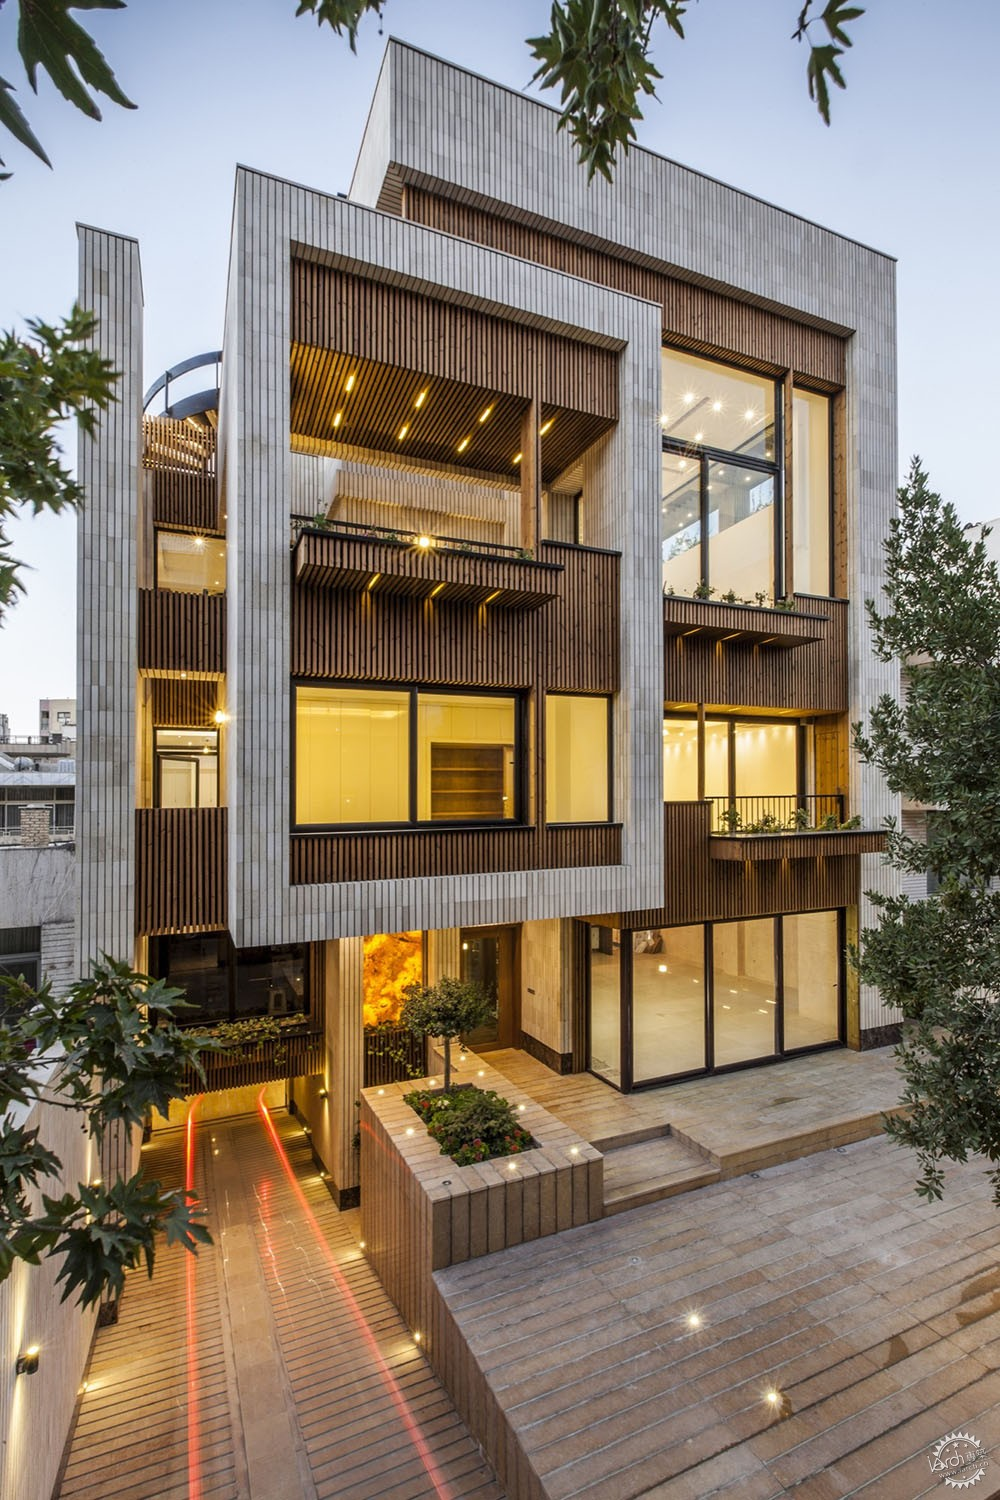 梅赫拉巴德小屋/ Sarsayeh Architectural Office第1张图片